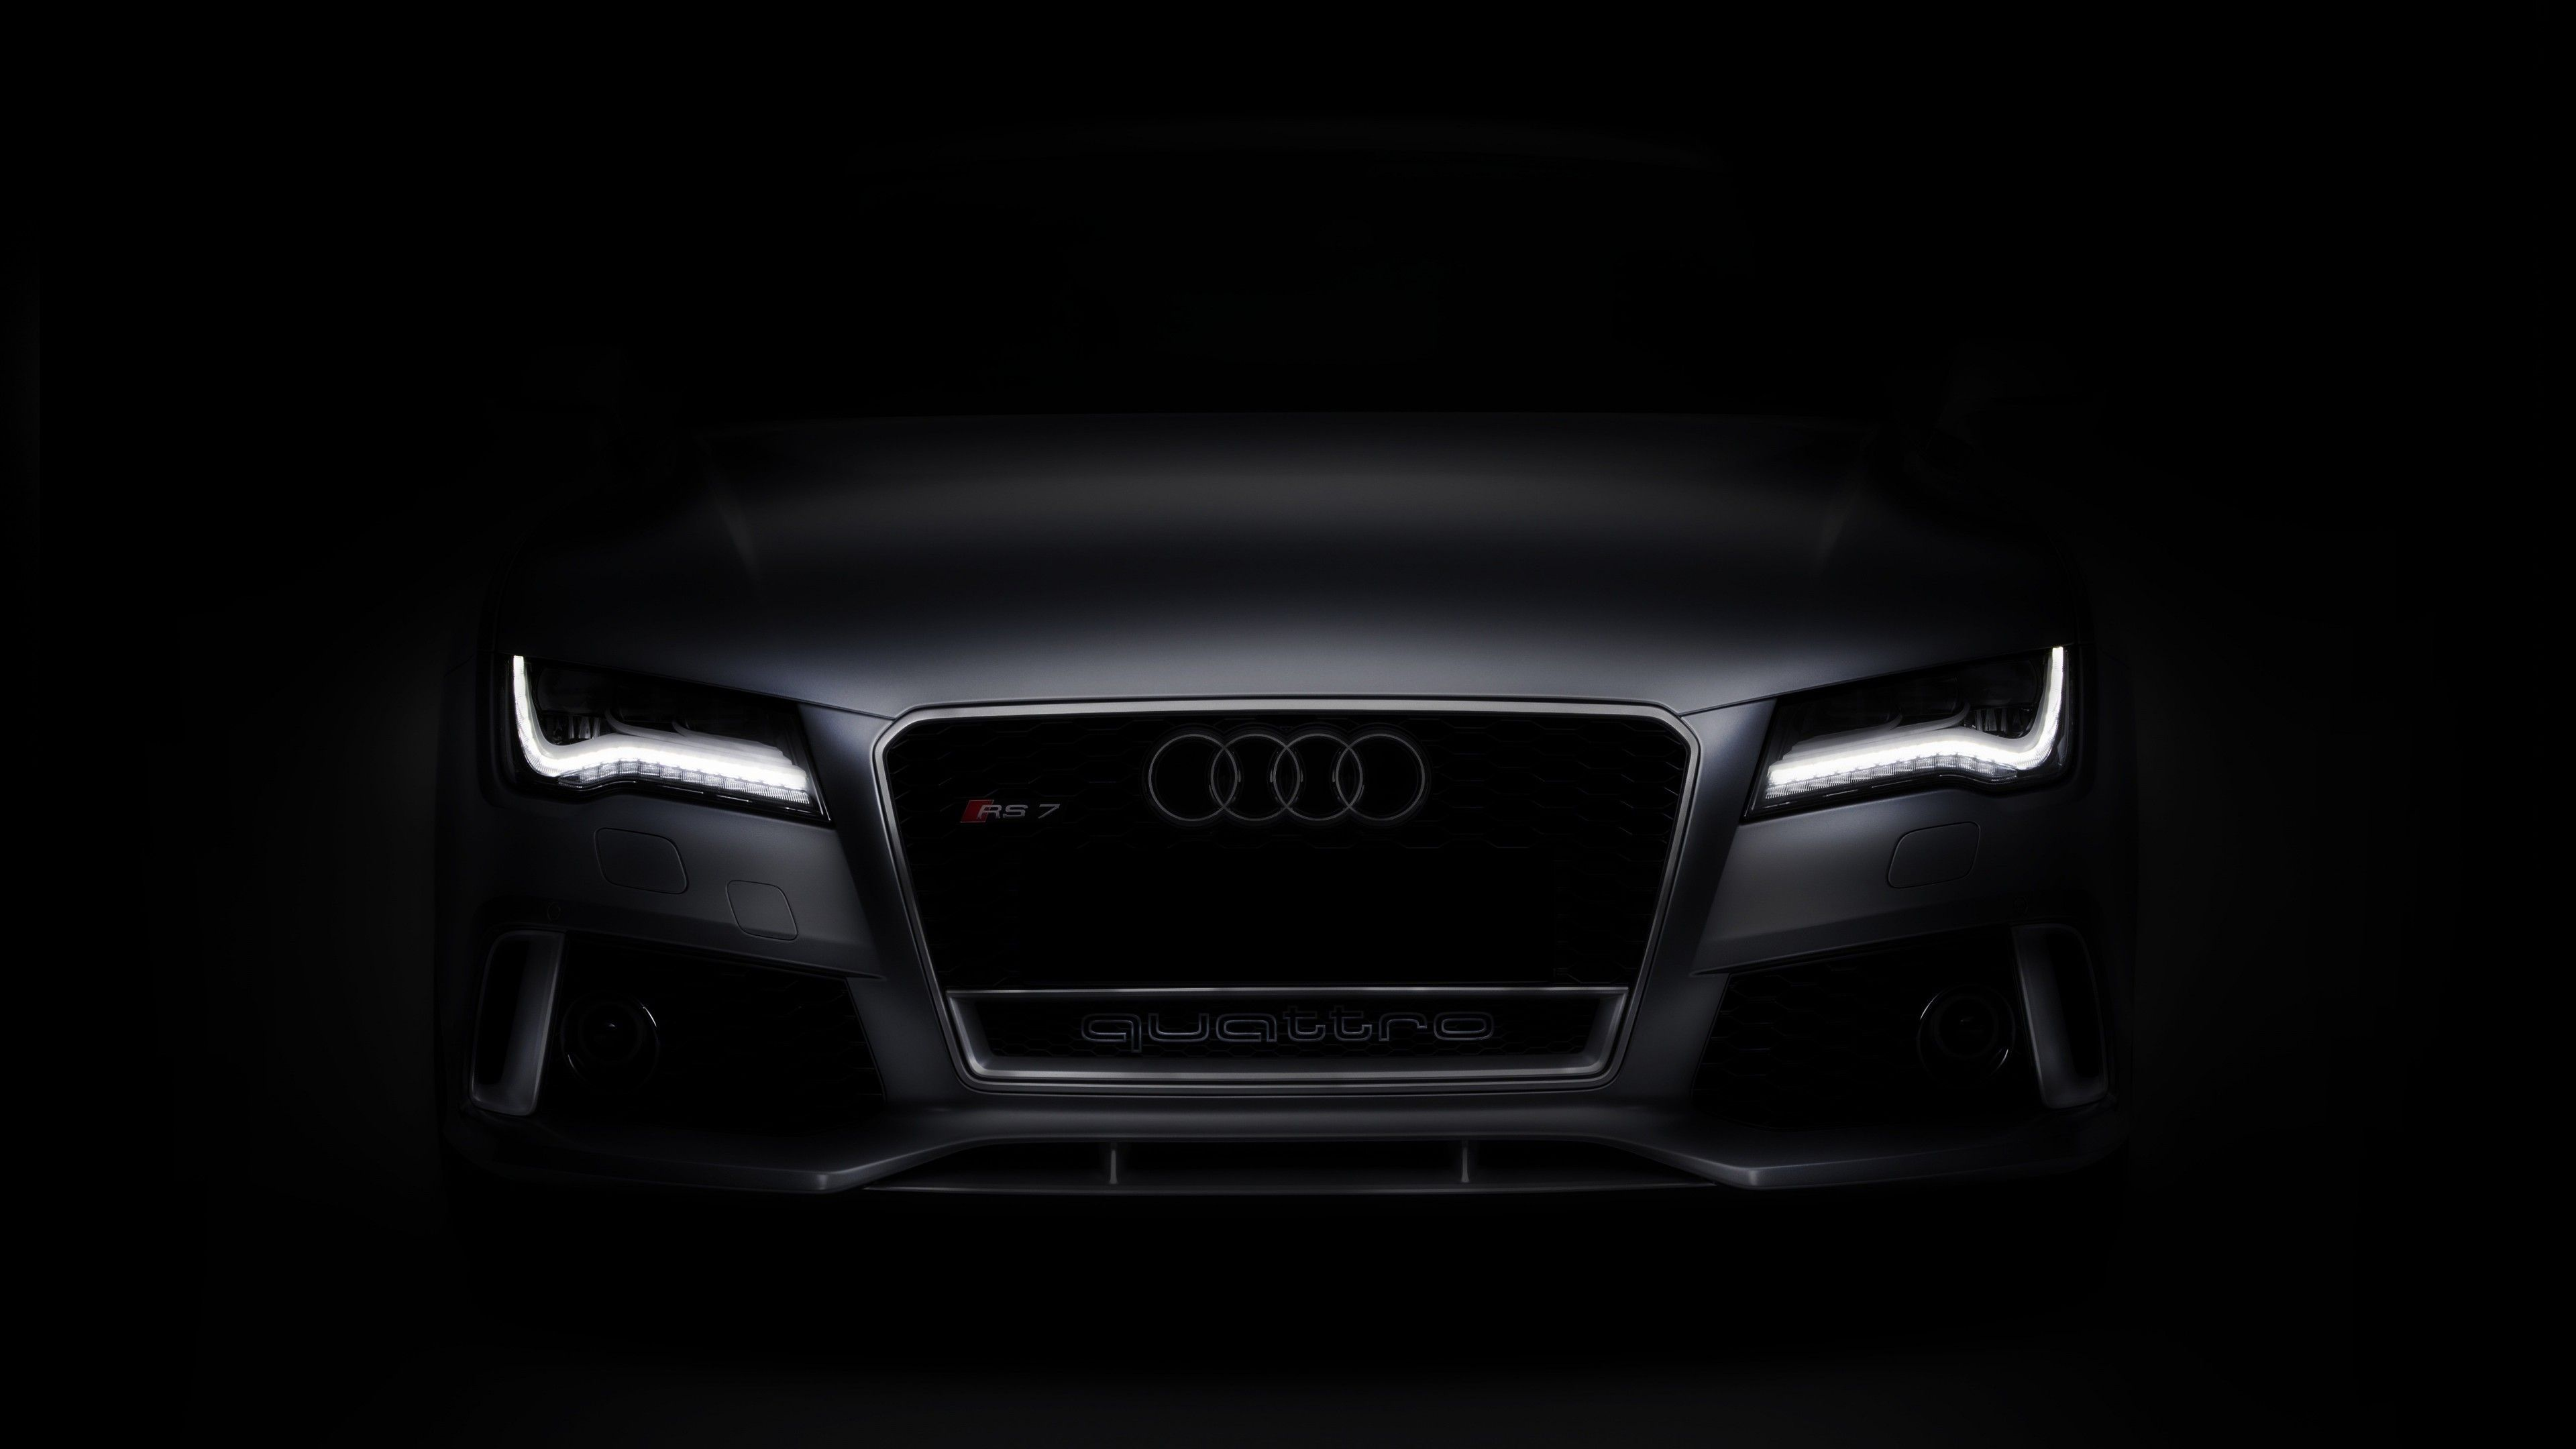 Download Latest Audi Rs7 4k Wallpaper Images Pictures Desktop And Backgrounds Are Ready For You In All High Resolution Here You Can Find Audi Desktop Autos